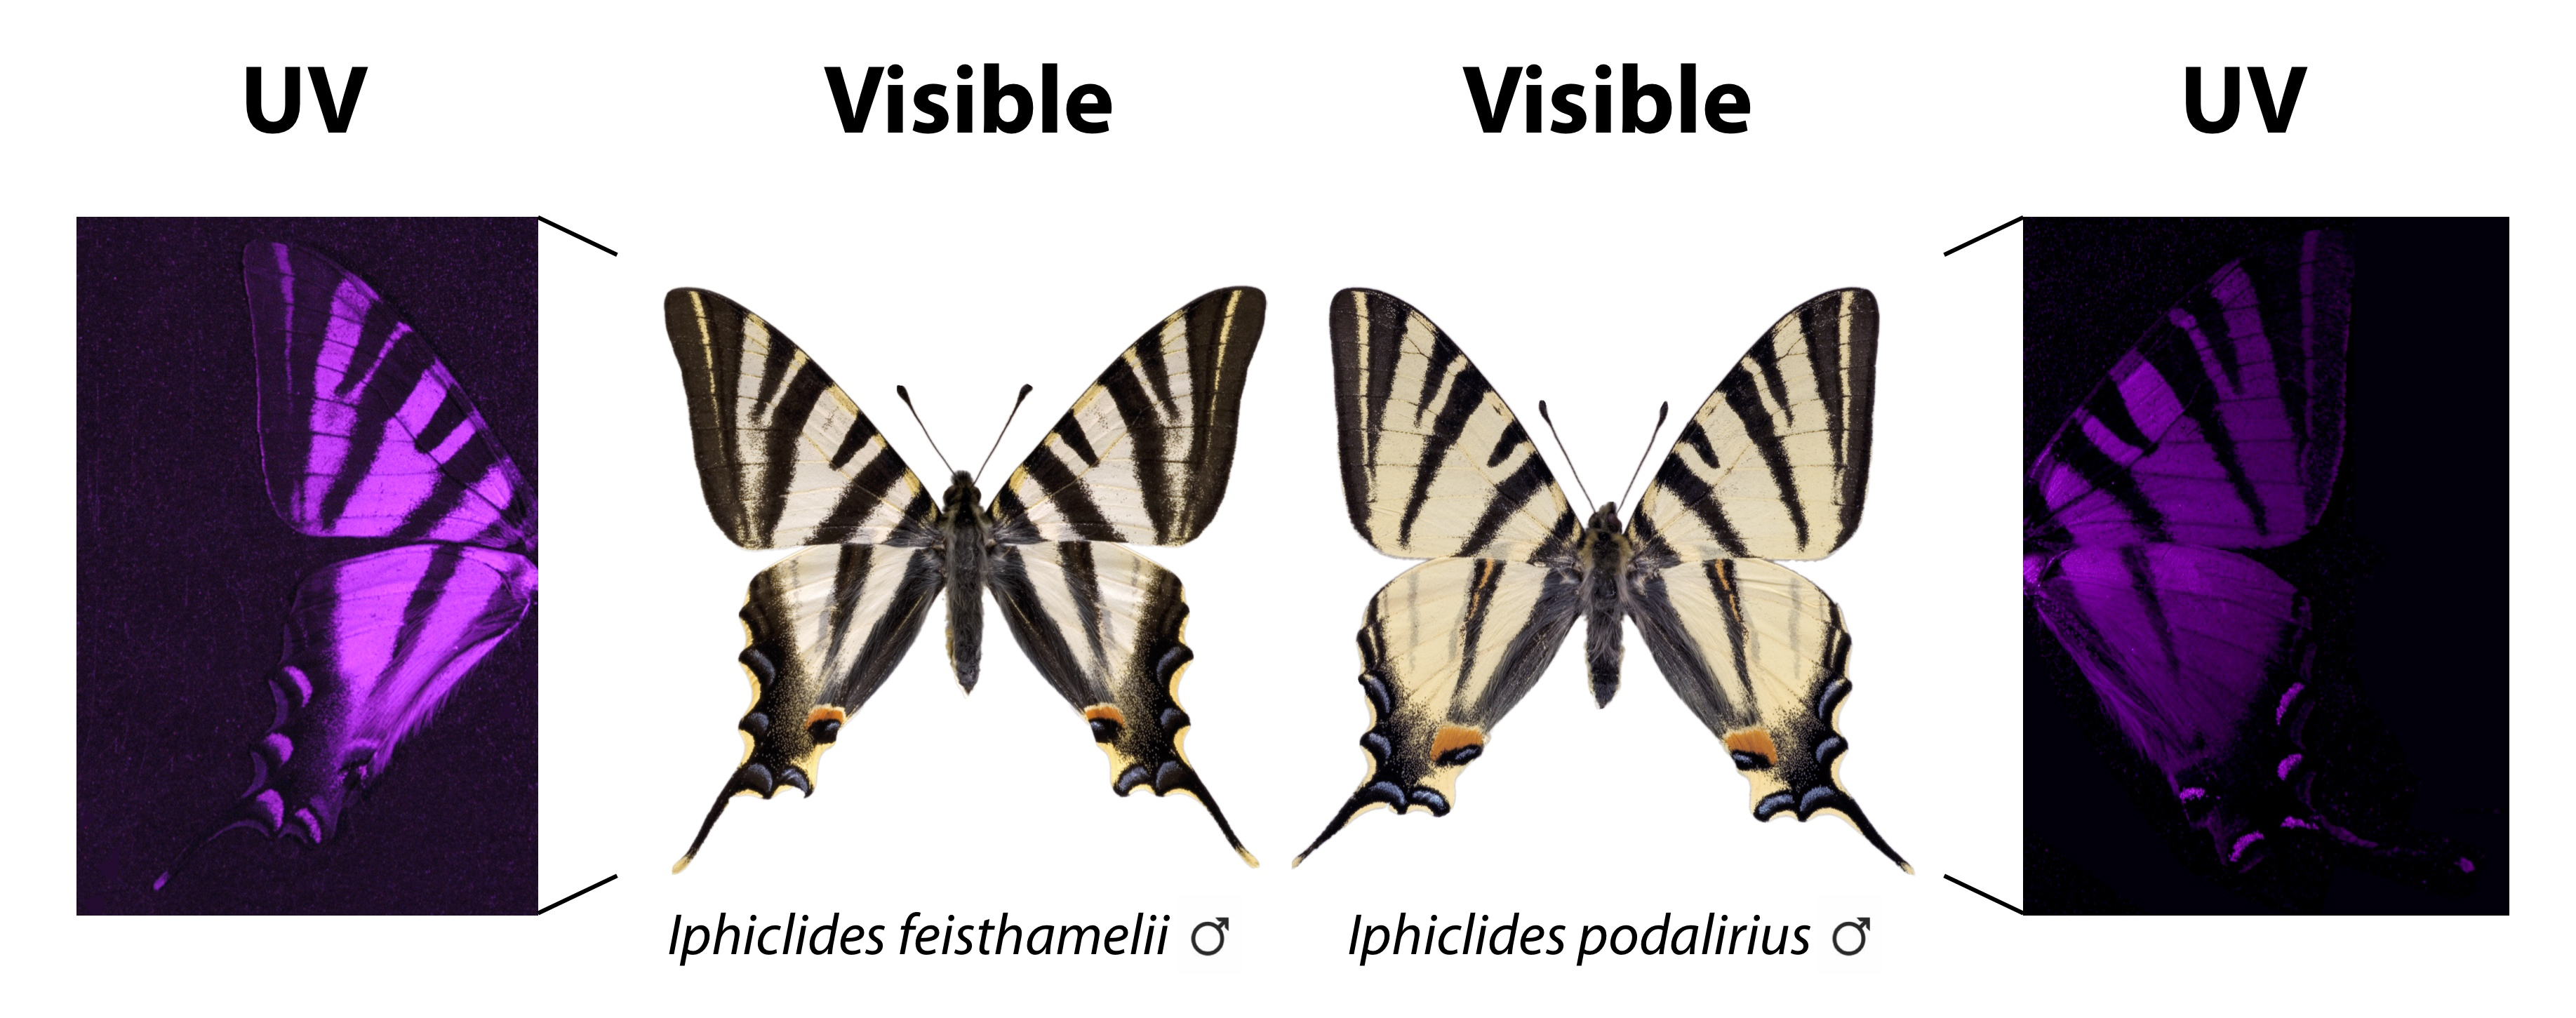 Images of southern scarce swallowtail butterfly (left) and scarce swallowtail (right) obtained with visible and UV photography. The subtle differences in the visible pattern of the wing become surprisingly evident with UV photography. Credit: Vlad Dinca